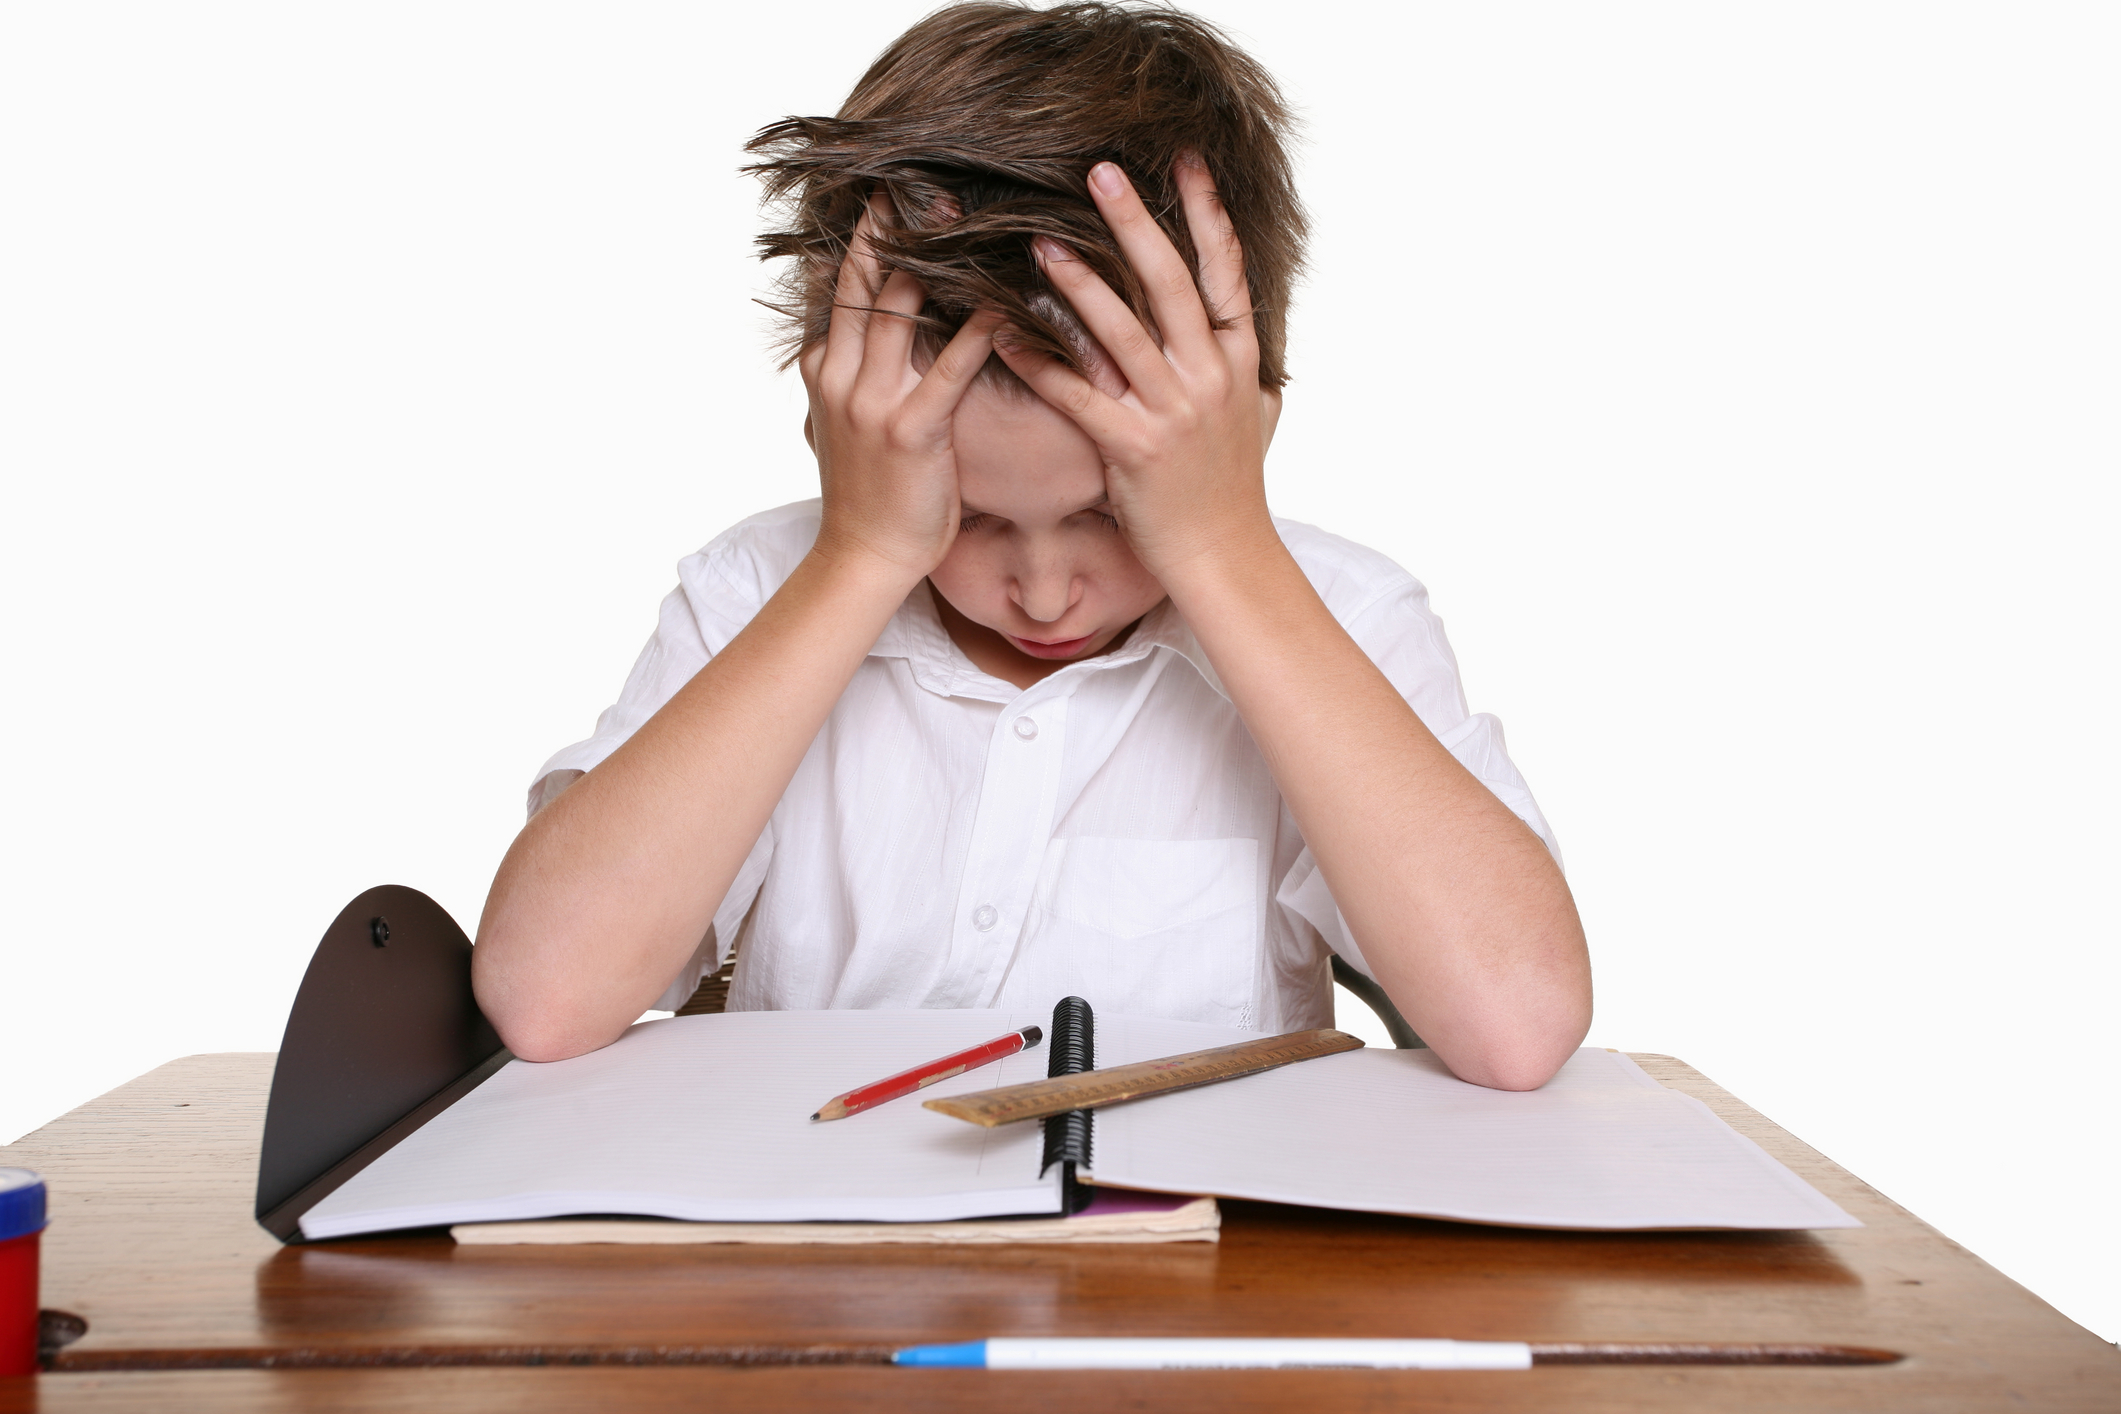 ADHD In Children – Causes, Symptoms And Treatment Options